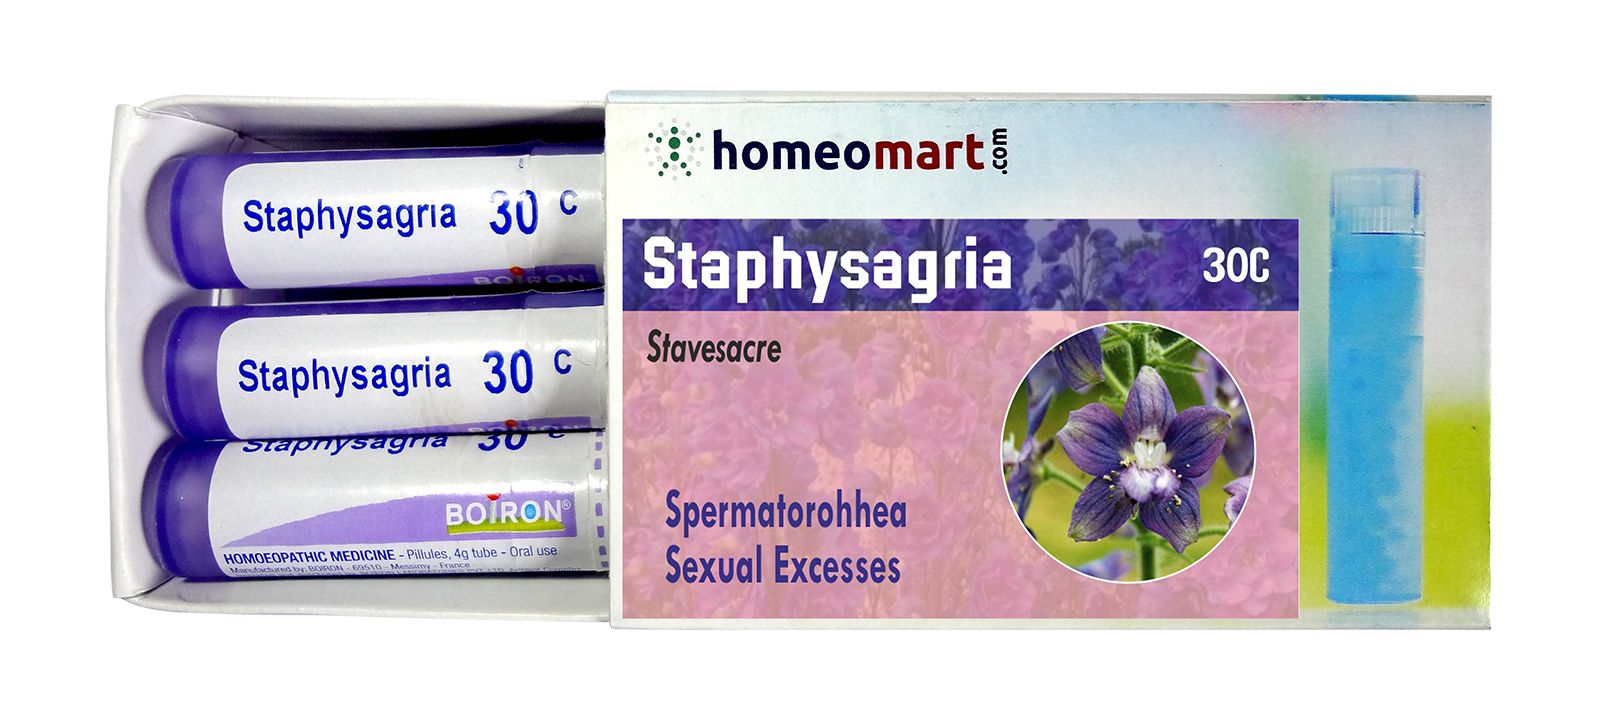 Homeopathy Staphysagria Remedy Kit for Sexual excesses